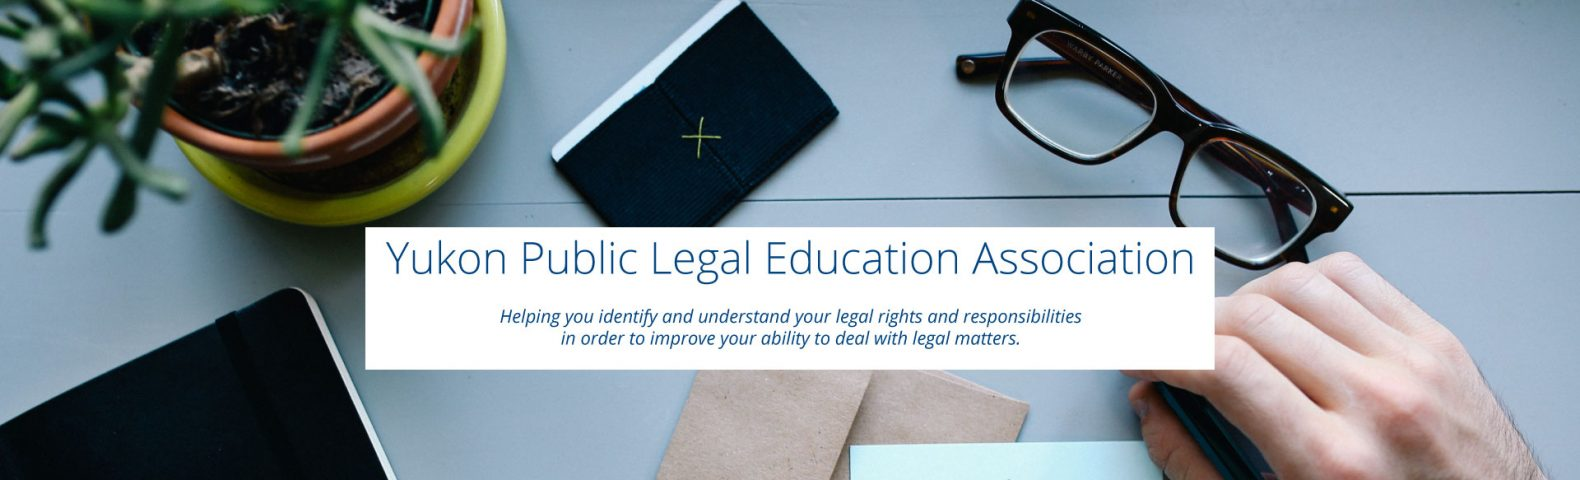 public legal education header image